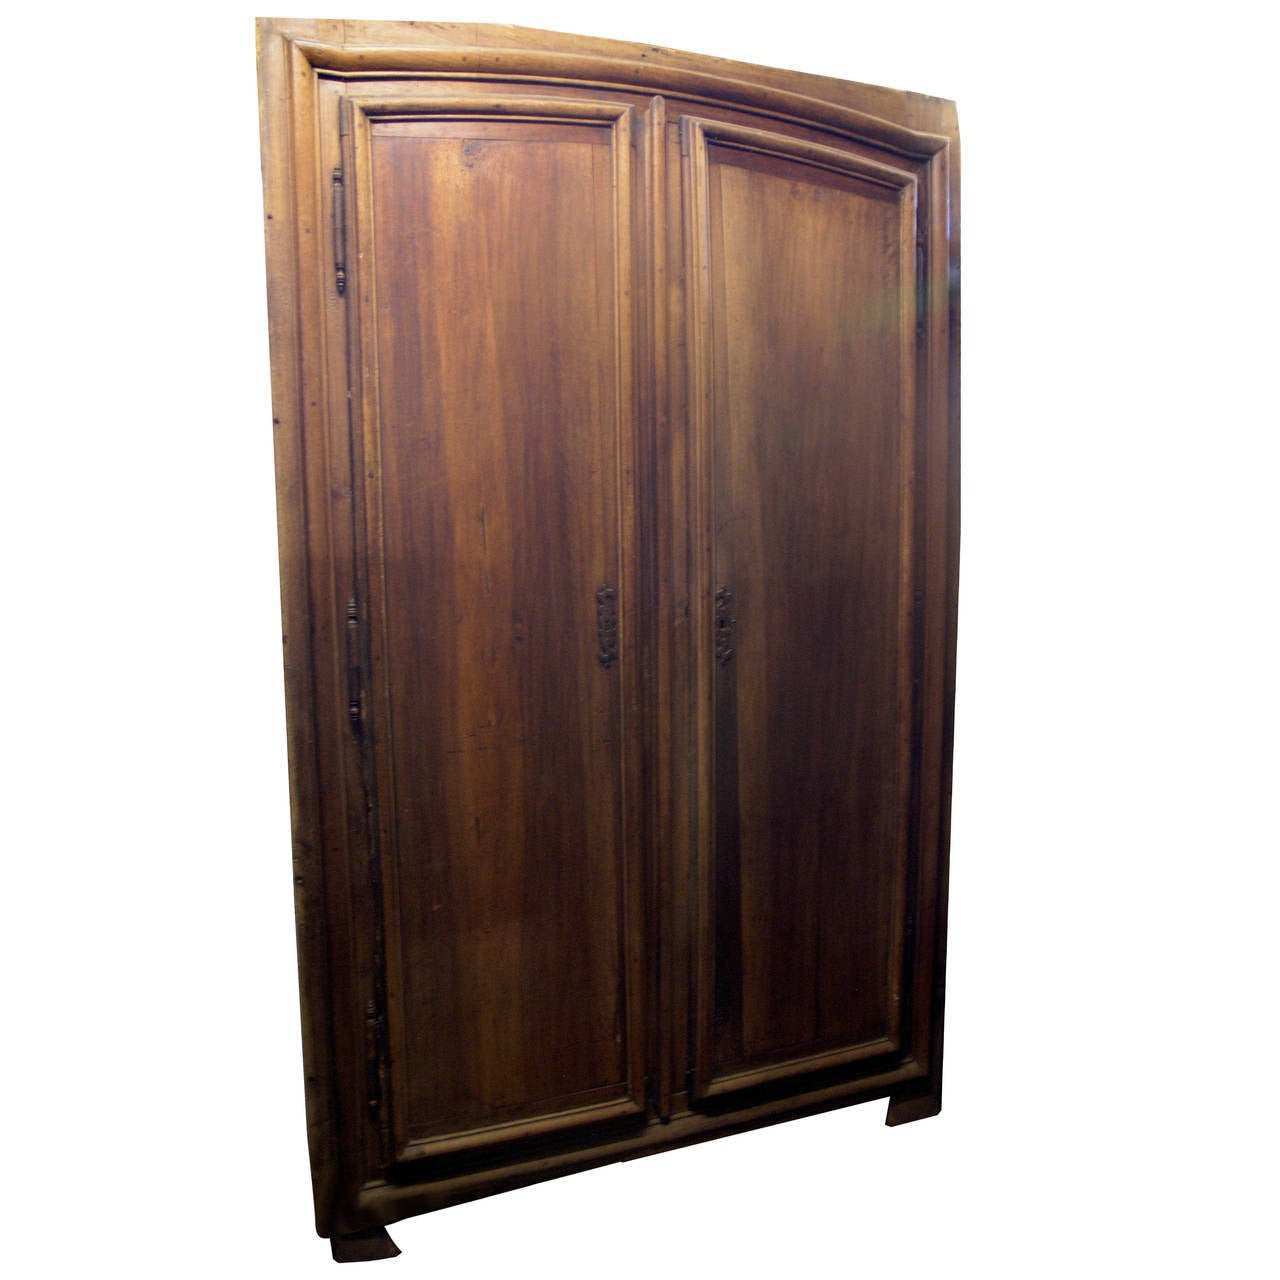 Antique Walnut Wall Cabinets For Sale - Antique Walnut Wall Cabinets For Sale At 1stdibs